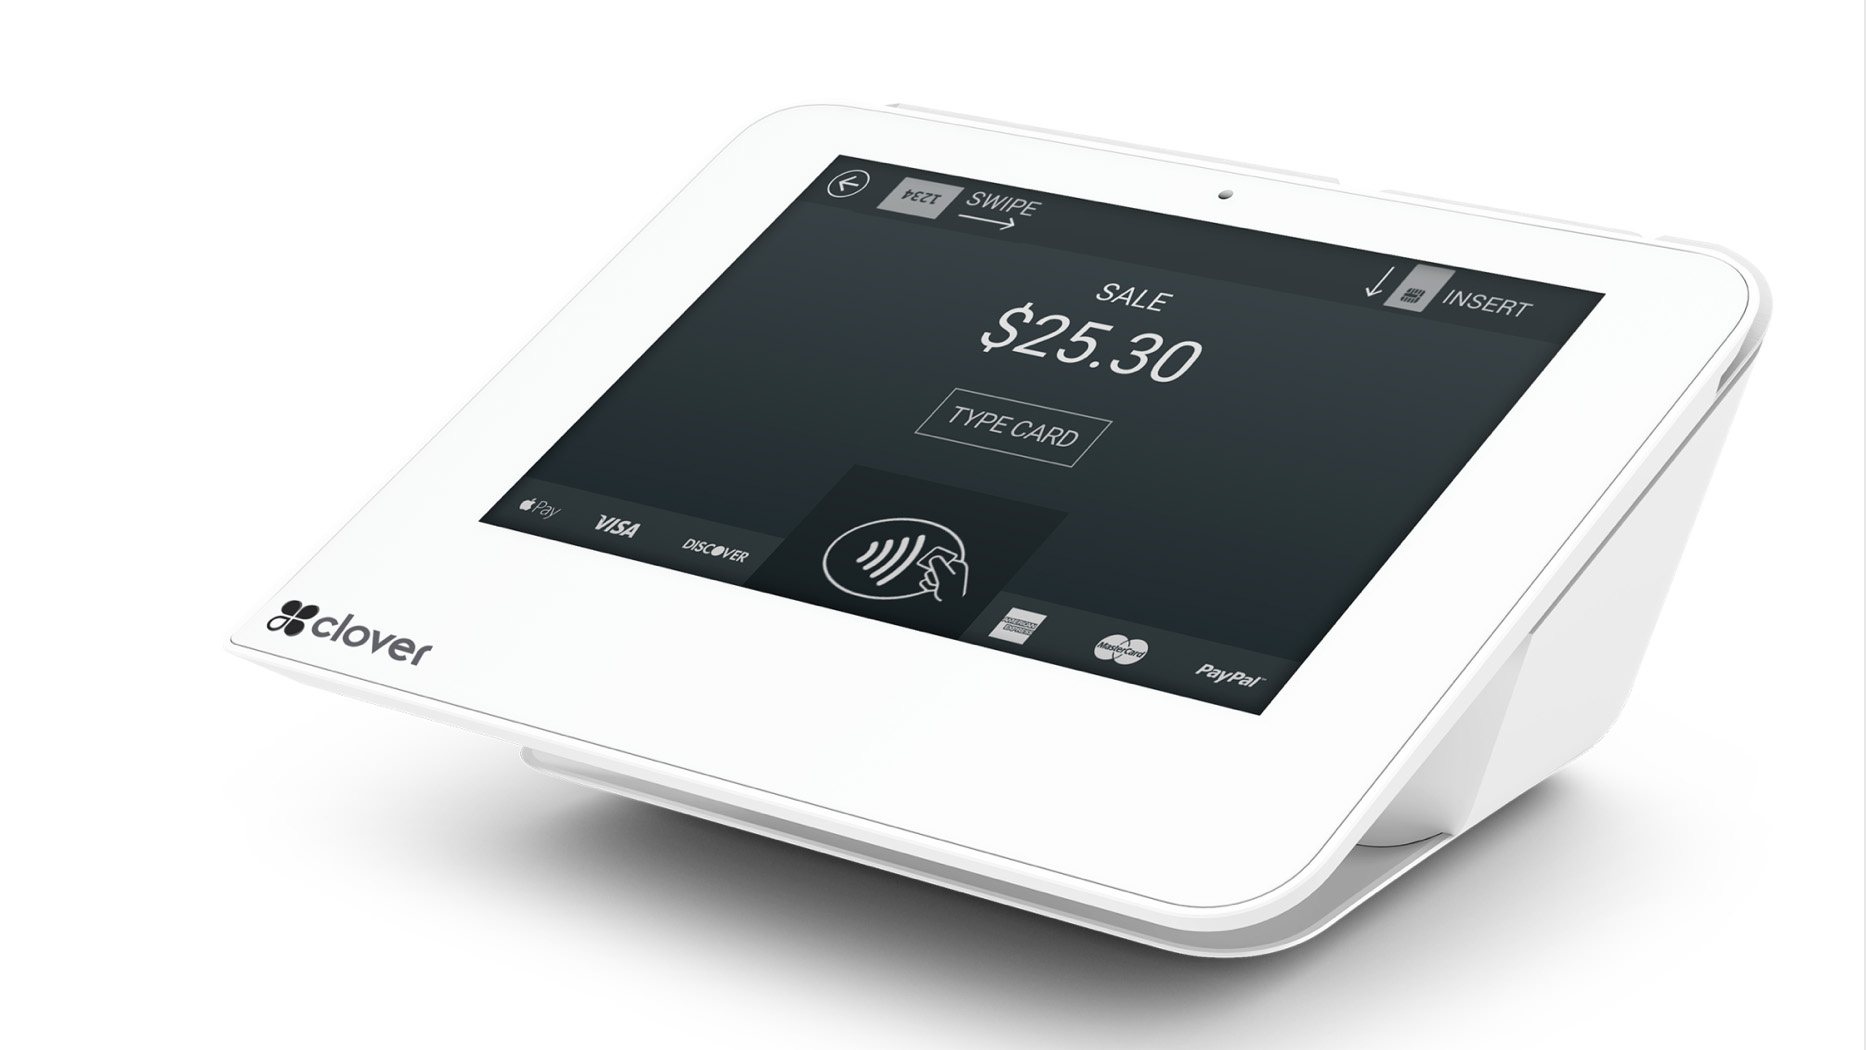 Clover POS gets highly praised for its user-friendly terminals